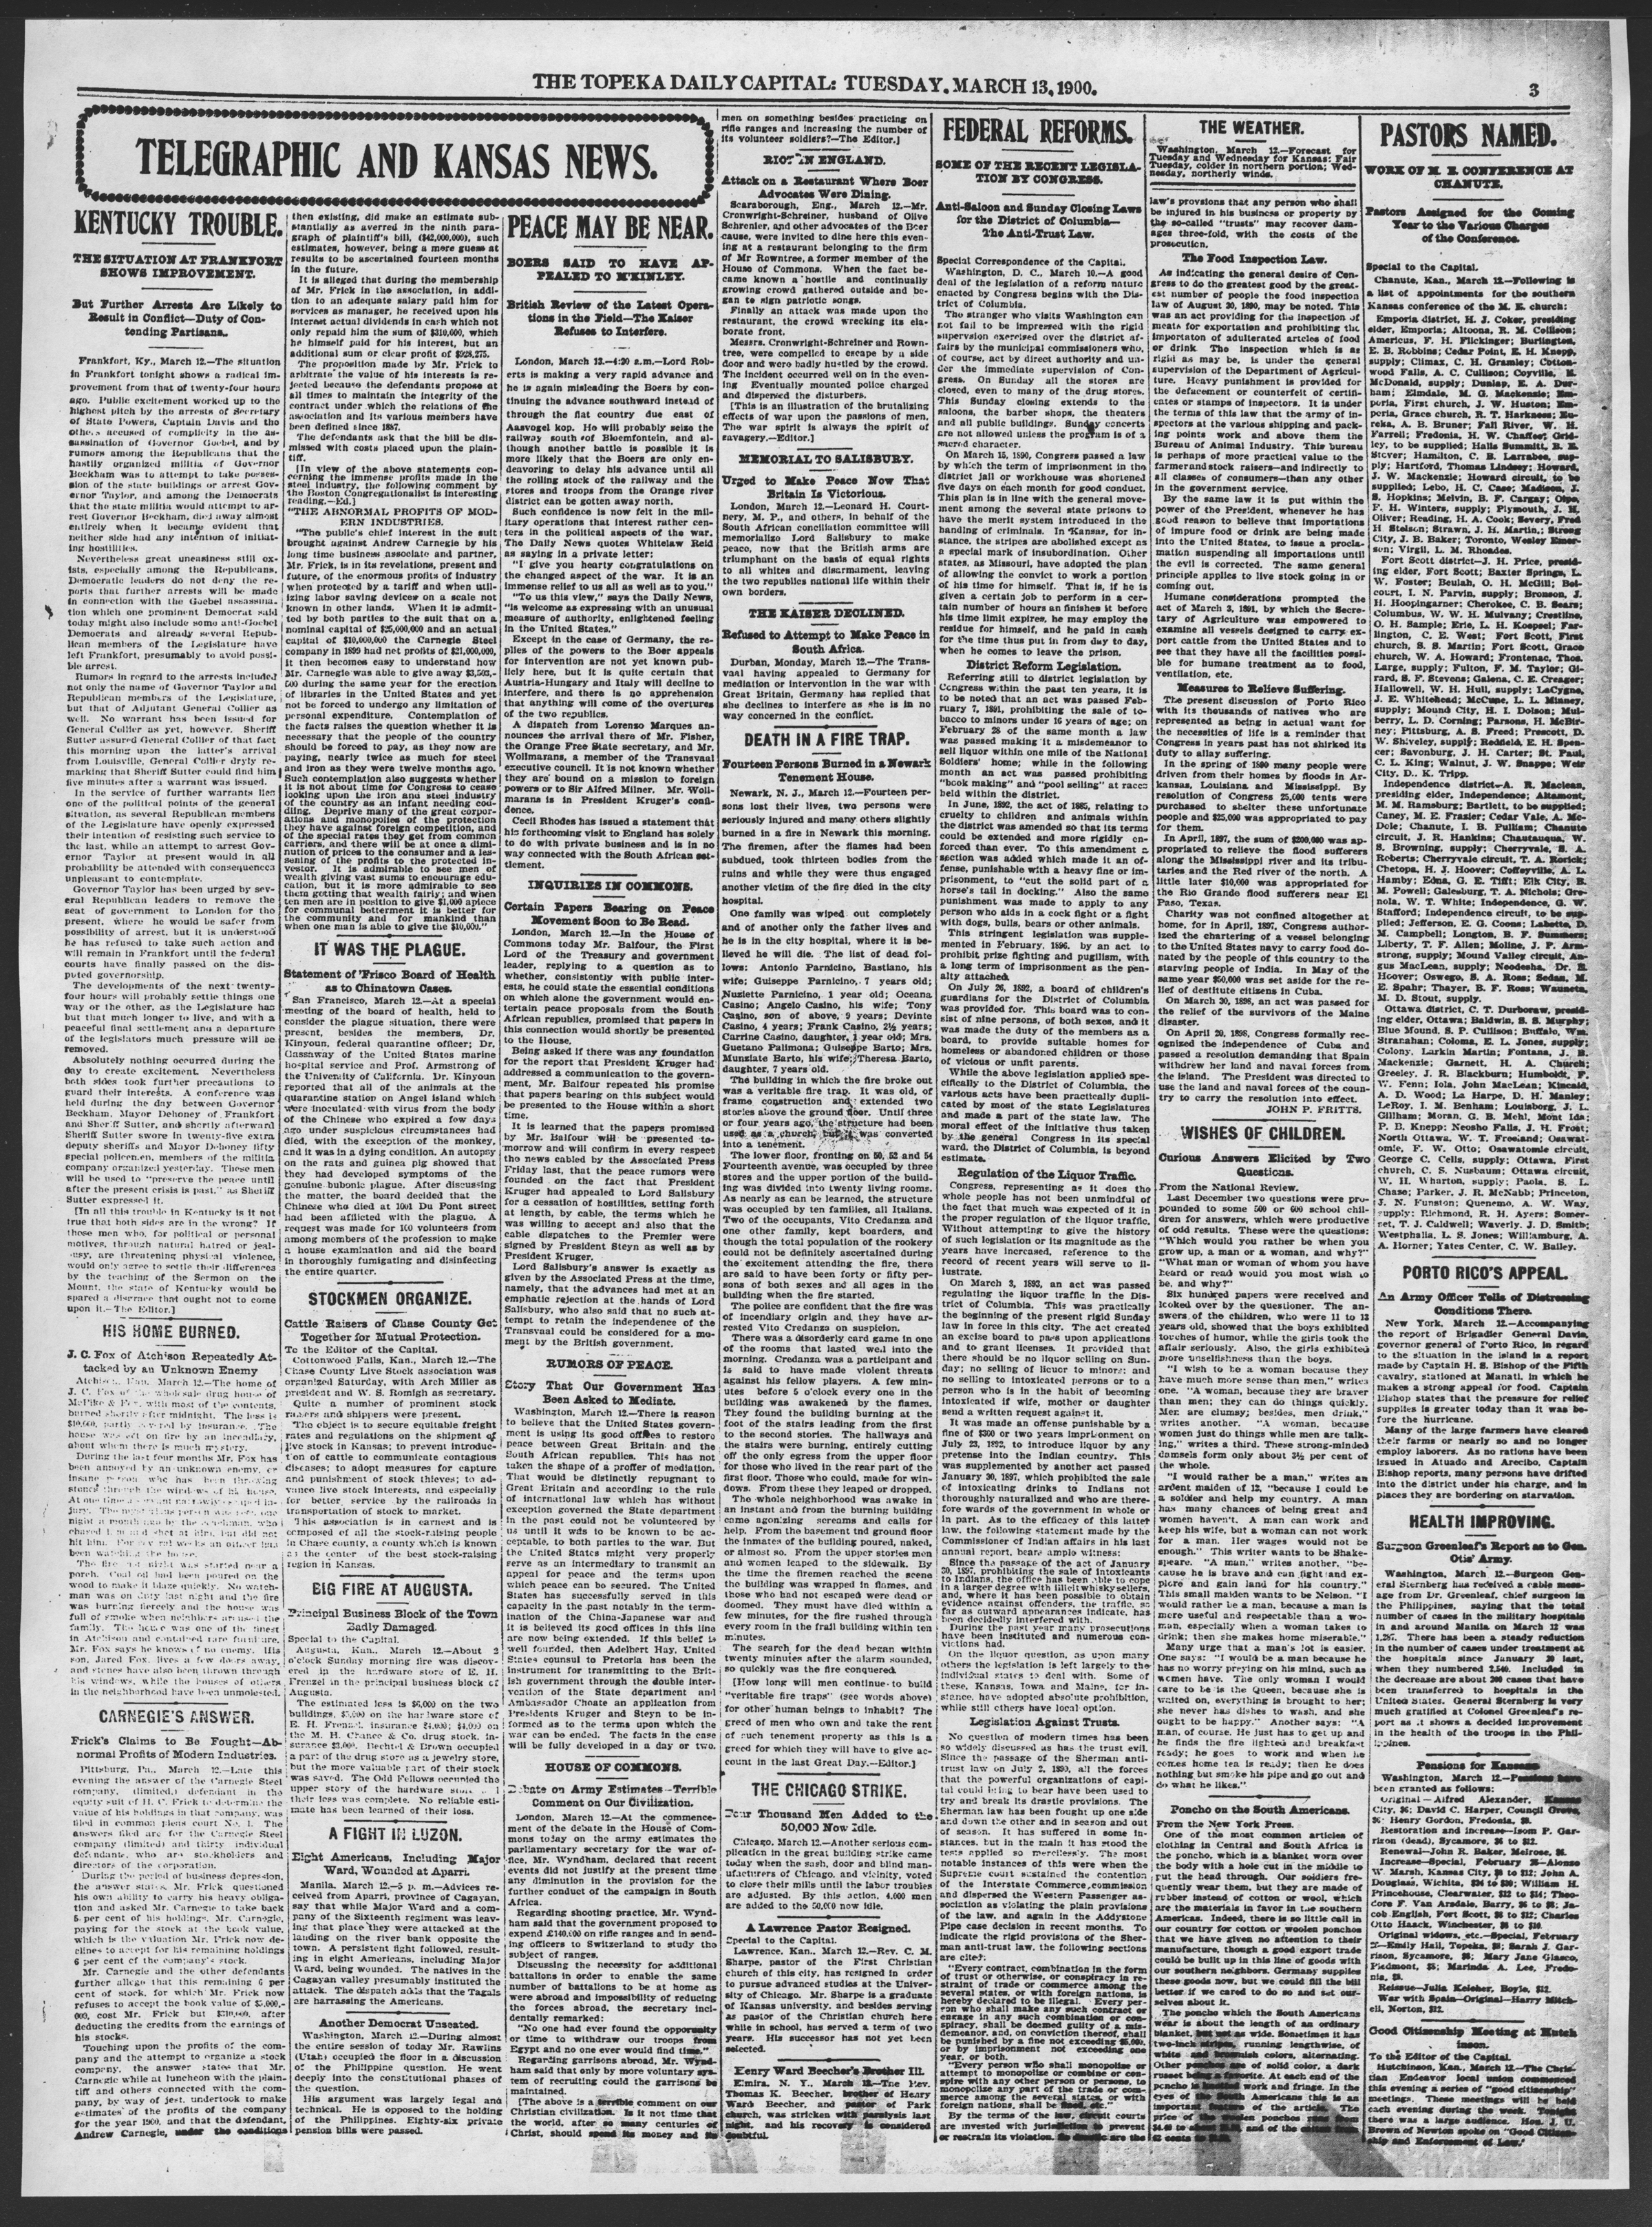 The Topeka daily capital. Sheldon edition - 3, Tuesday, March 13, 1900